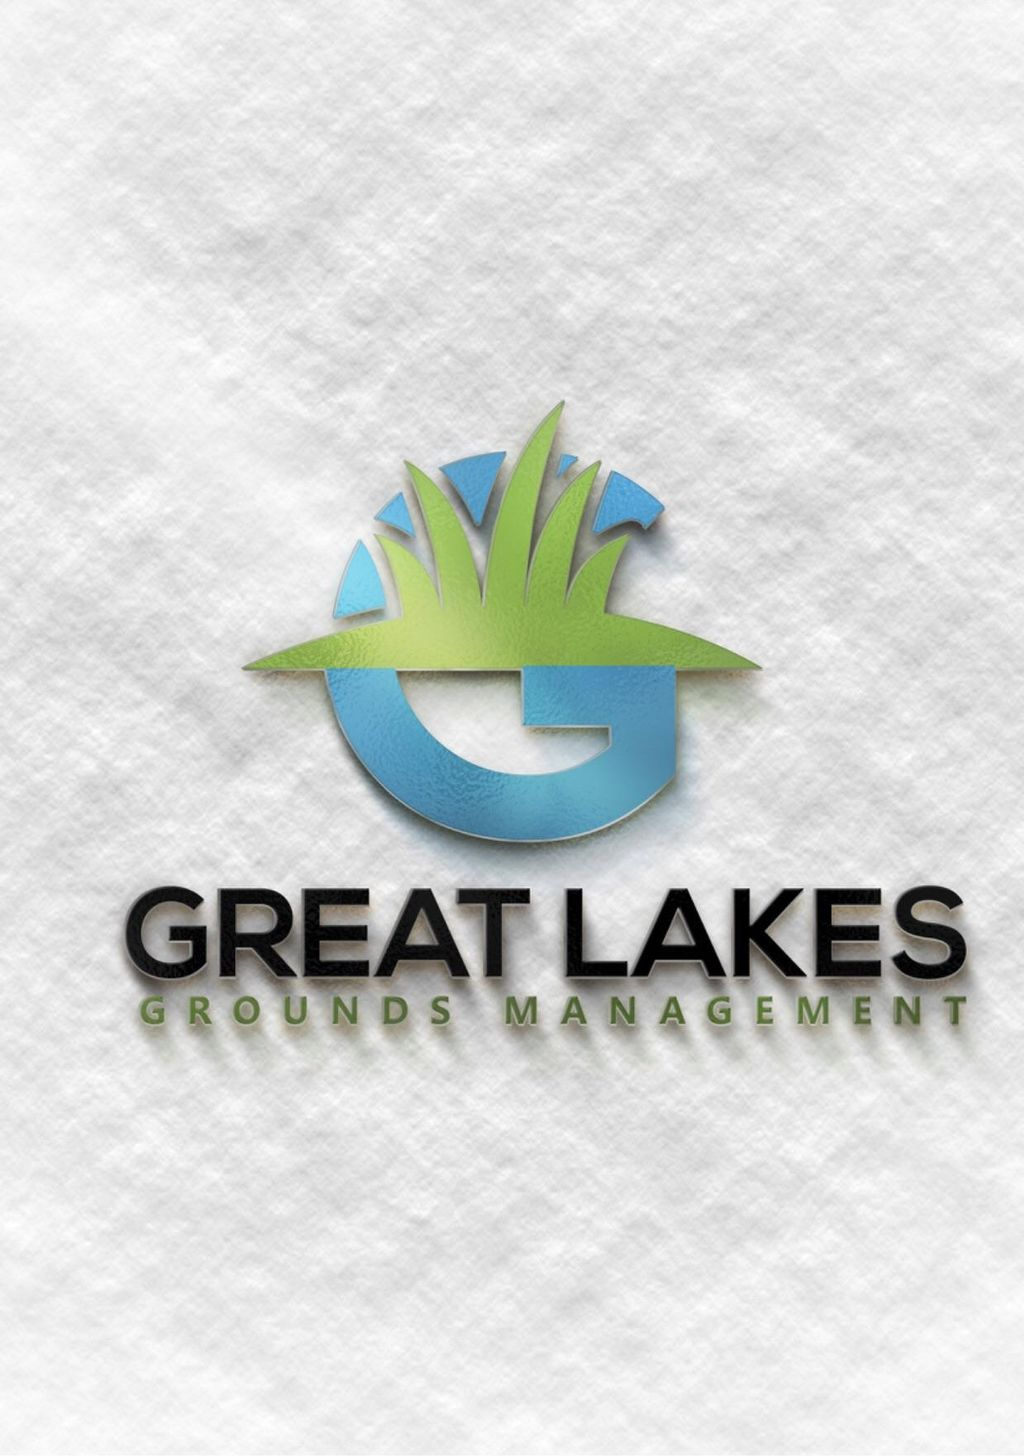 Great Lakes Grounds Management